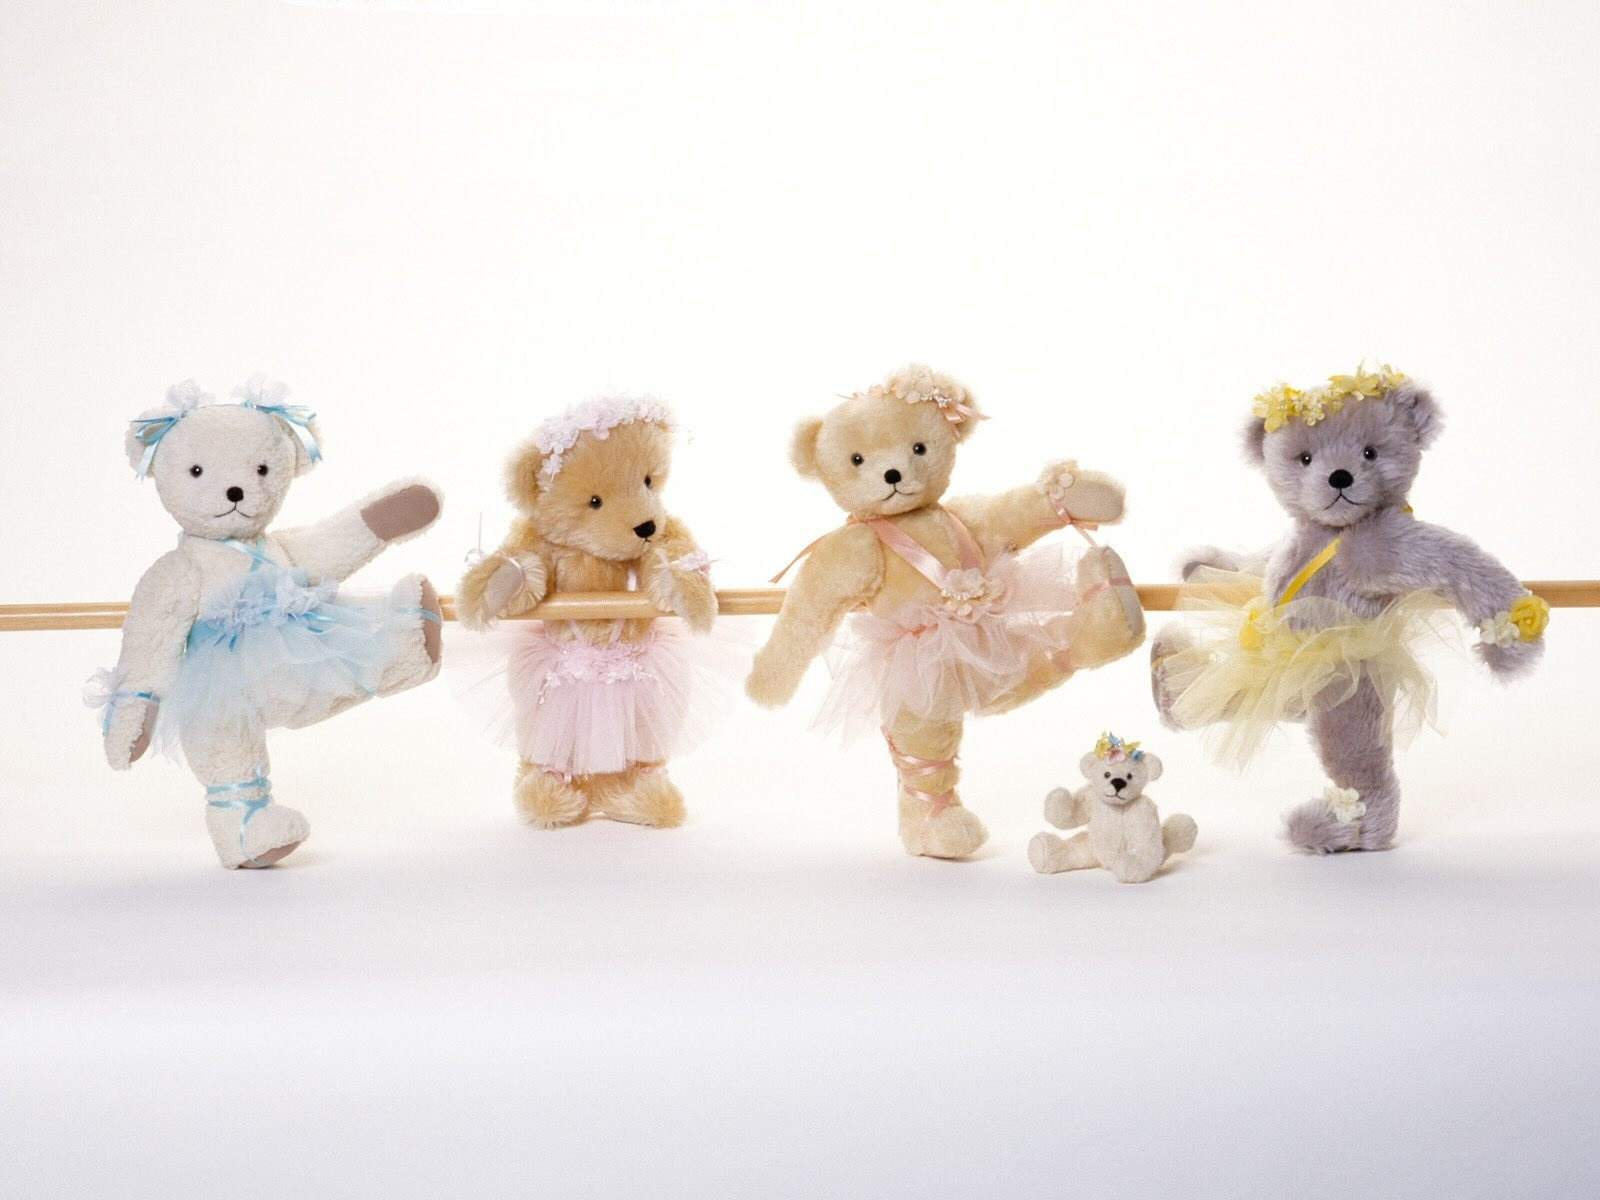 Teddy Bear Cute Ballet Wallpaper Wide